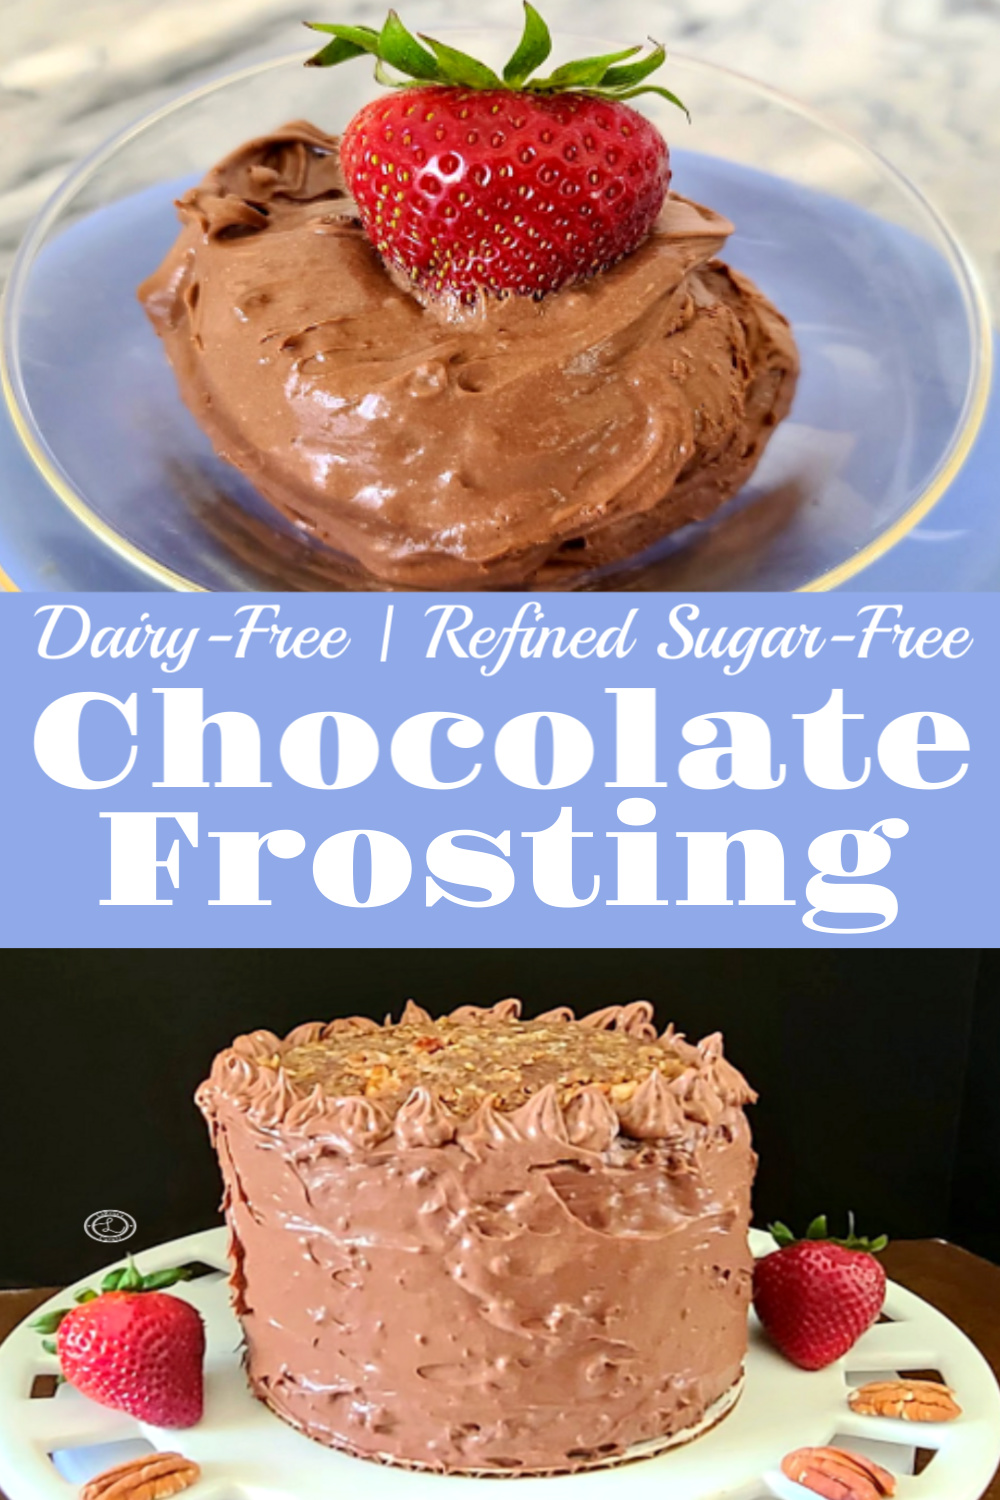 2 pictures. One picture of a cake with the Dairy-Free Chocolate frosting. One picture of the frosting in a bowl.